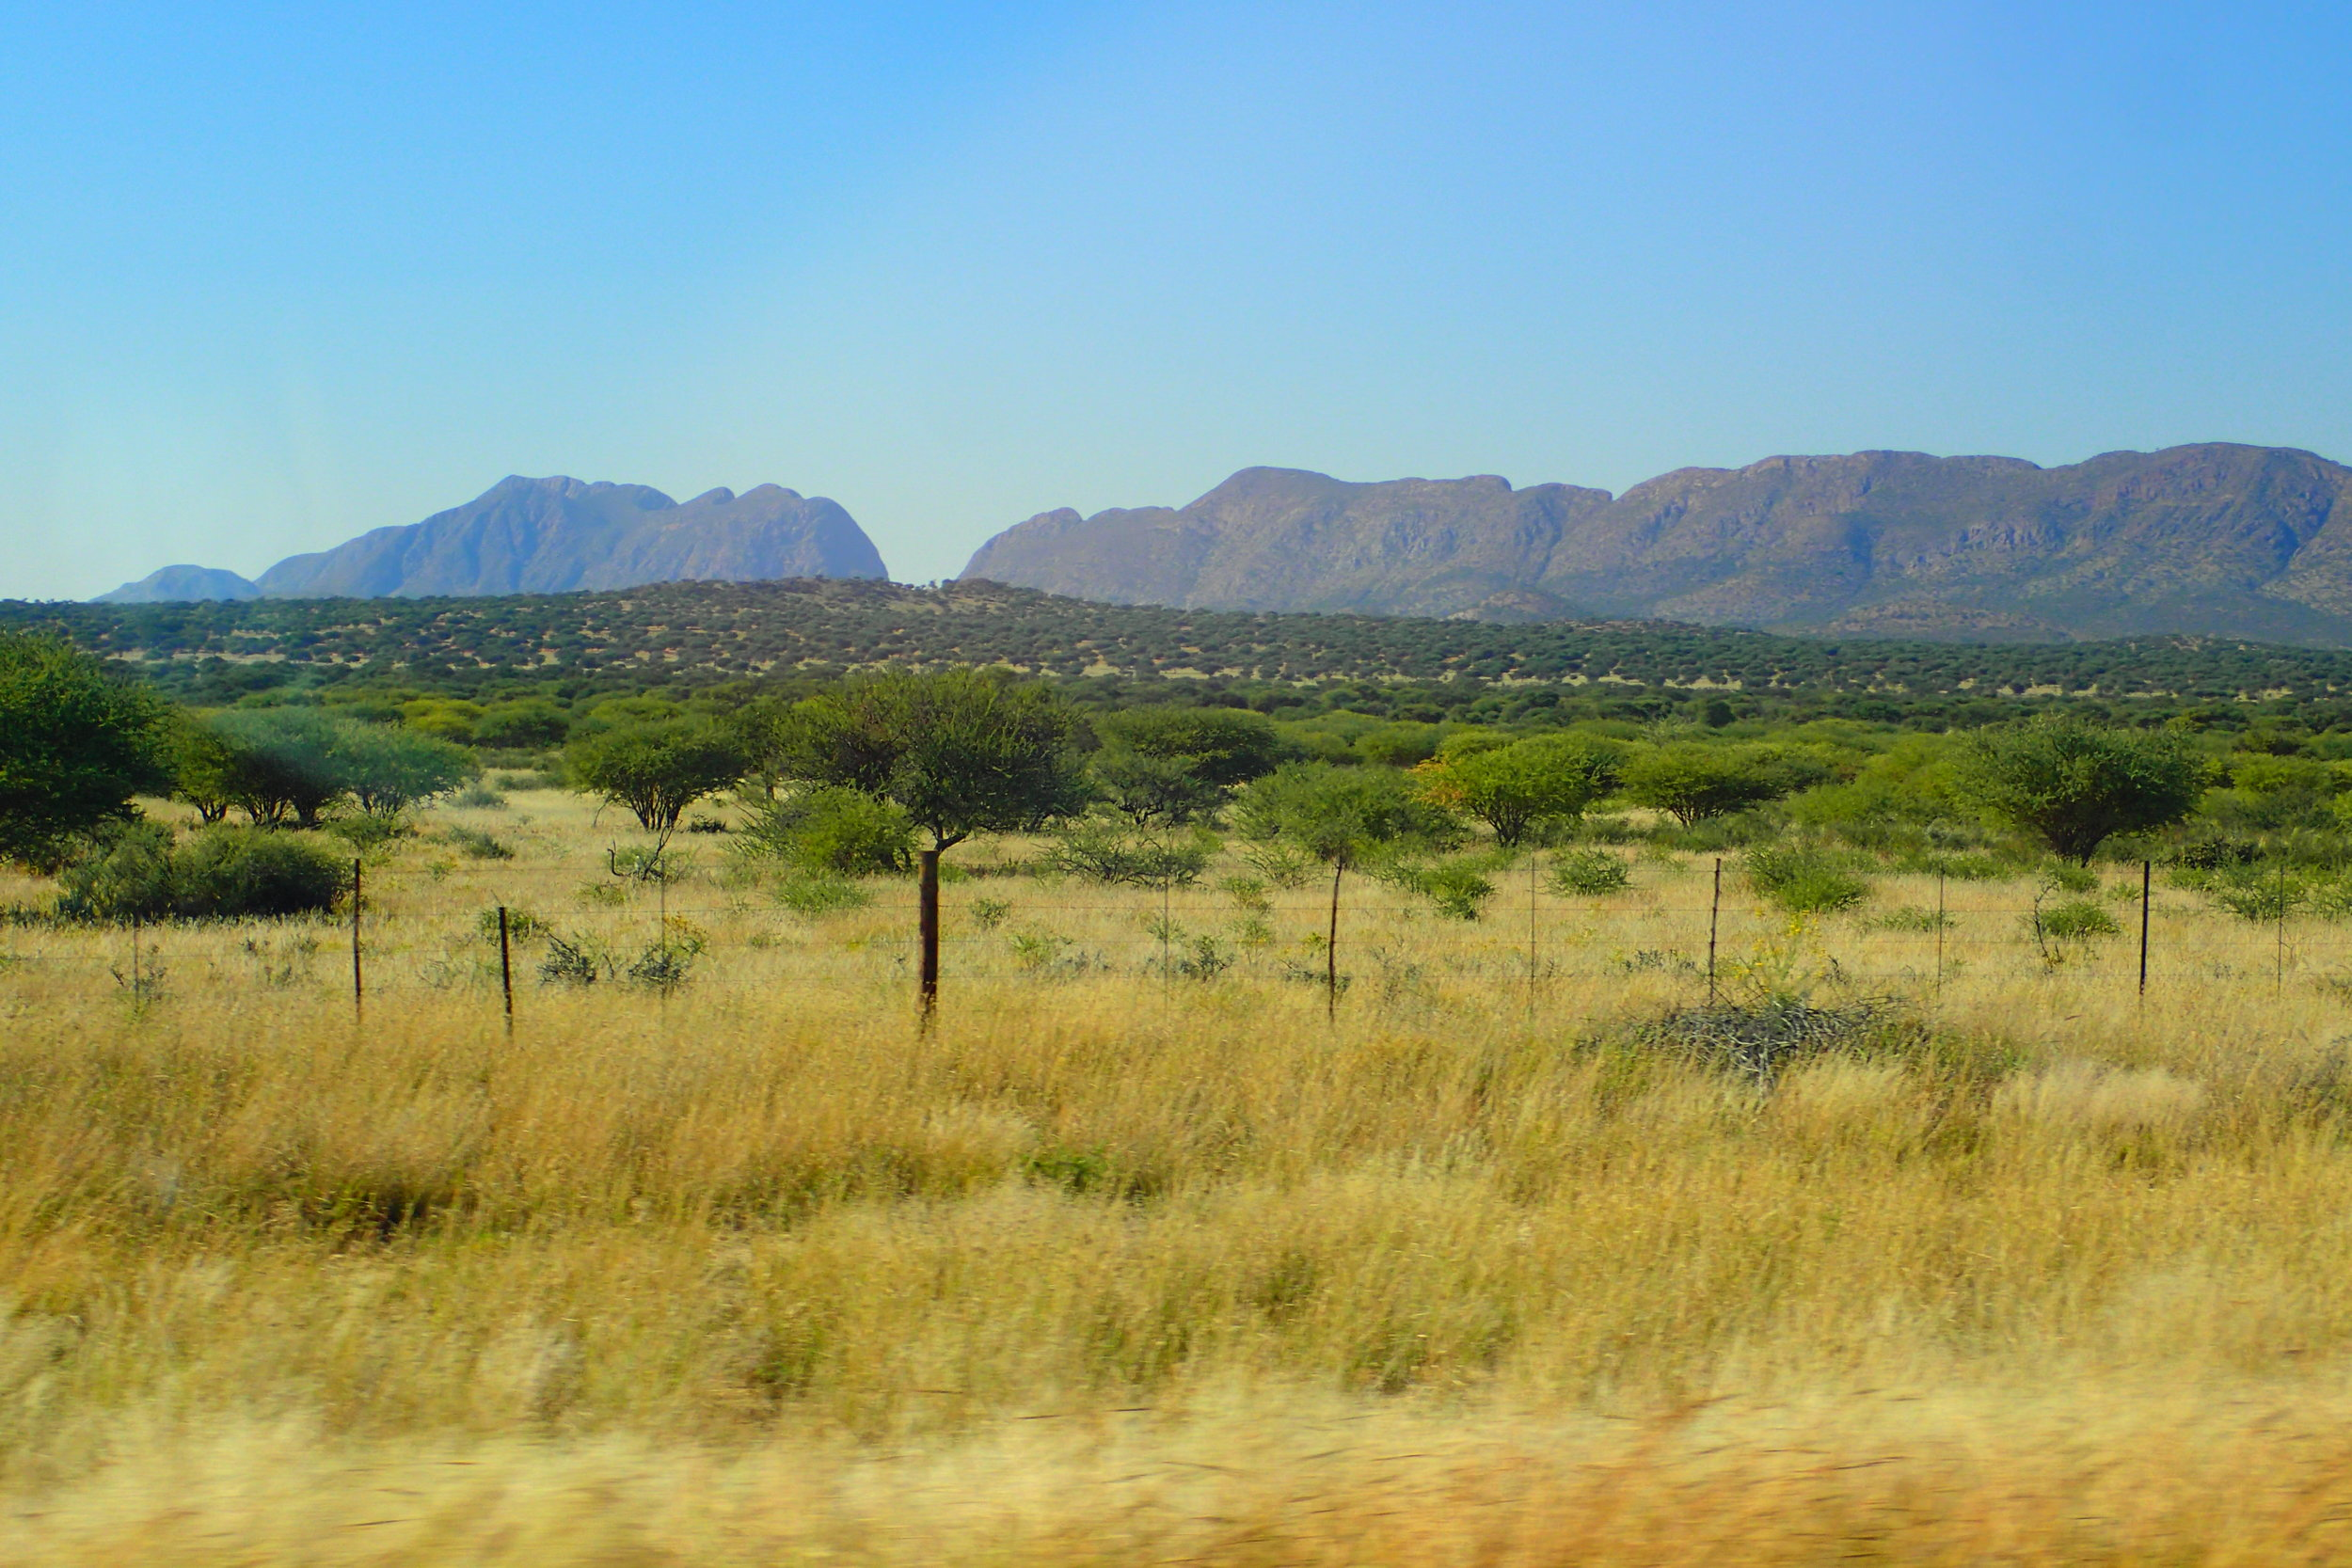 Half of Namibian land is devoted to agriculture